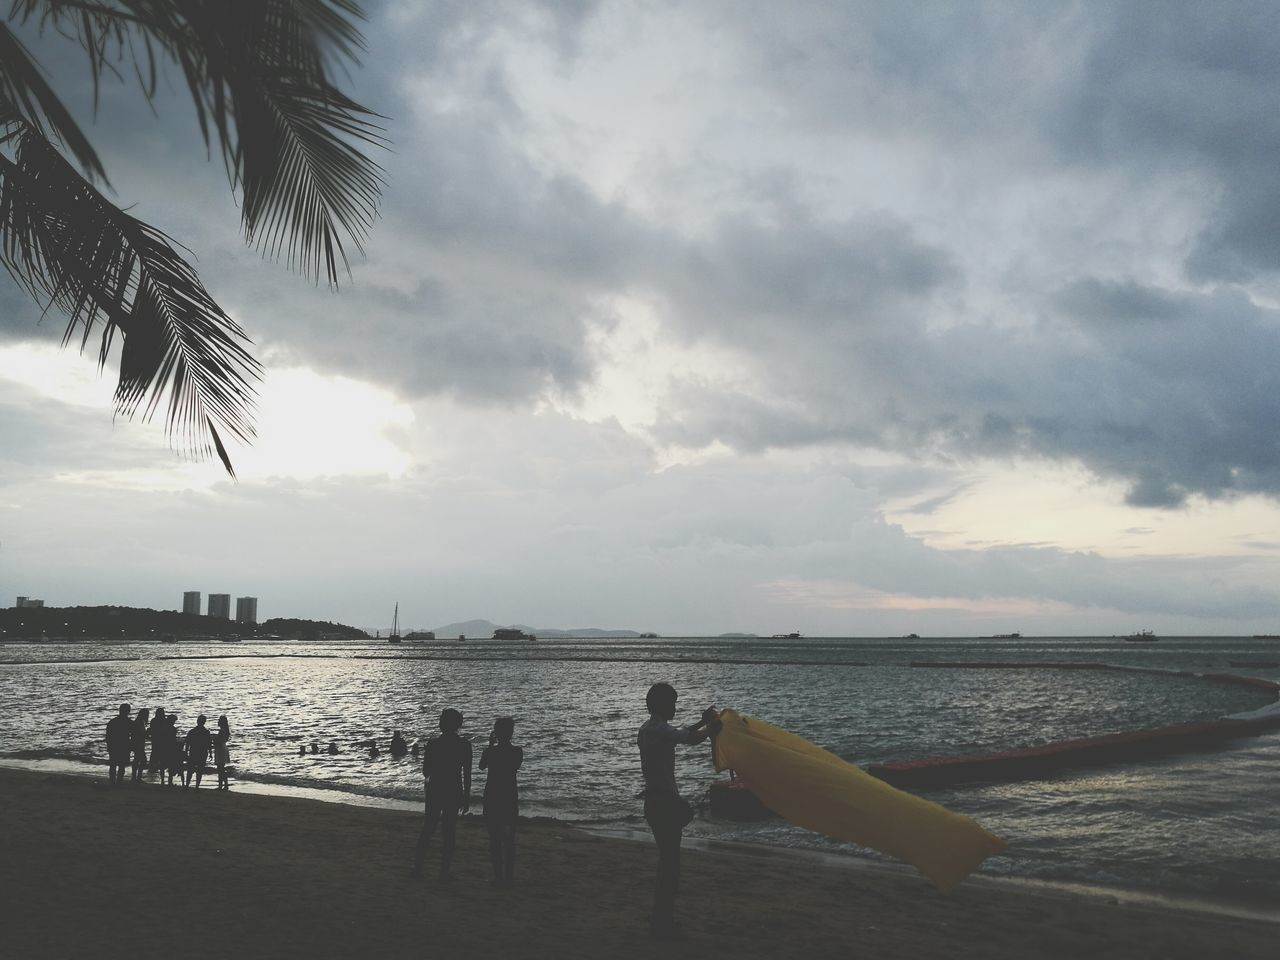 water, sky, sea, beach, nature, cloud - sky, outdoors, scenics, horizon over water, real people, beauty in nature, day